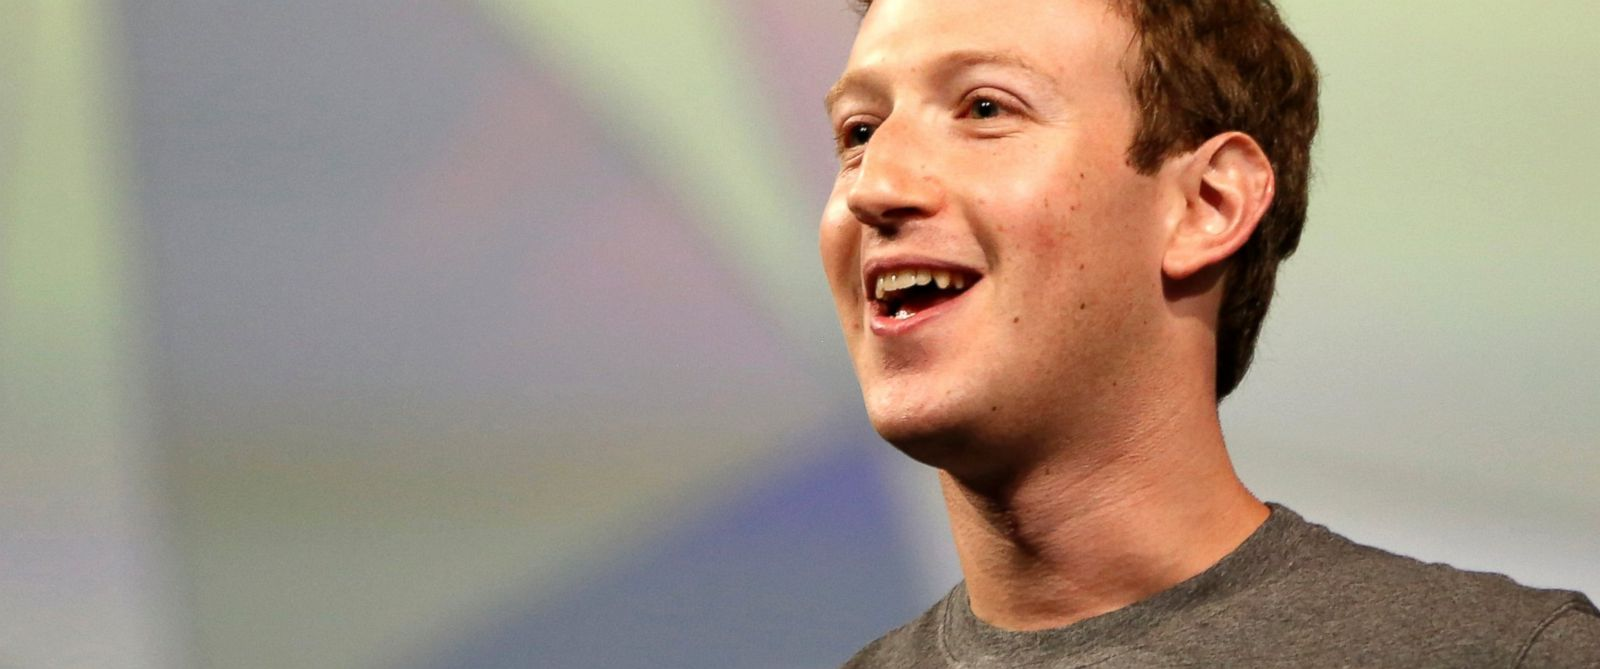 PHOTO: Mark Zuckerberg addresses the crowd gathered during his keynote address at Facebooks f8 developers conference in San Francisco, Calif. on April 30, 2014.